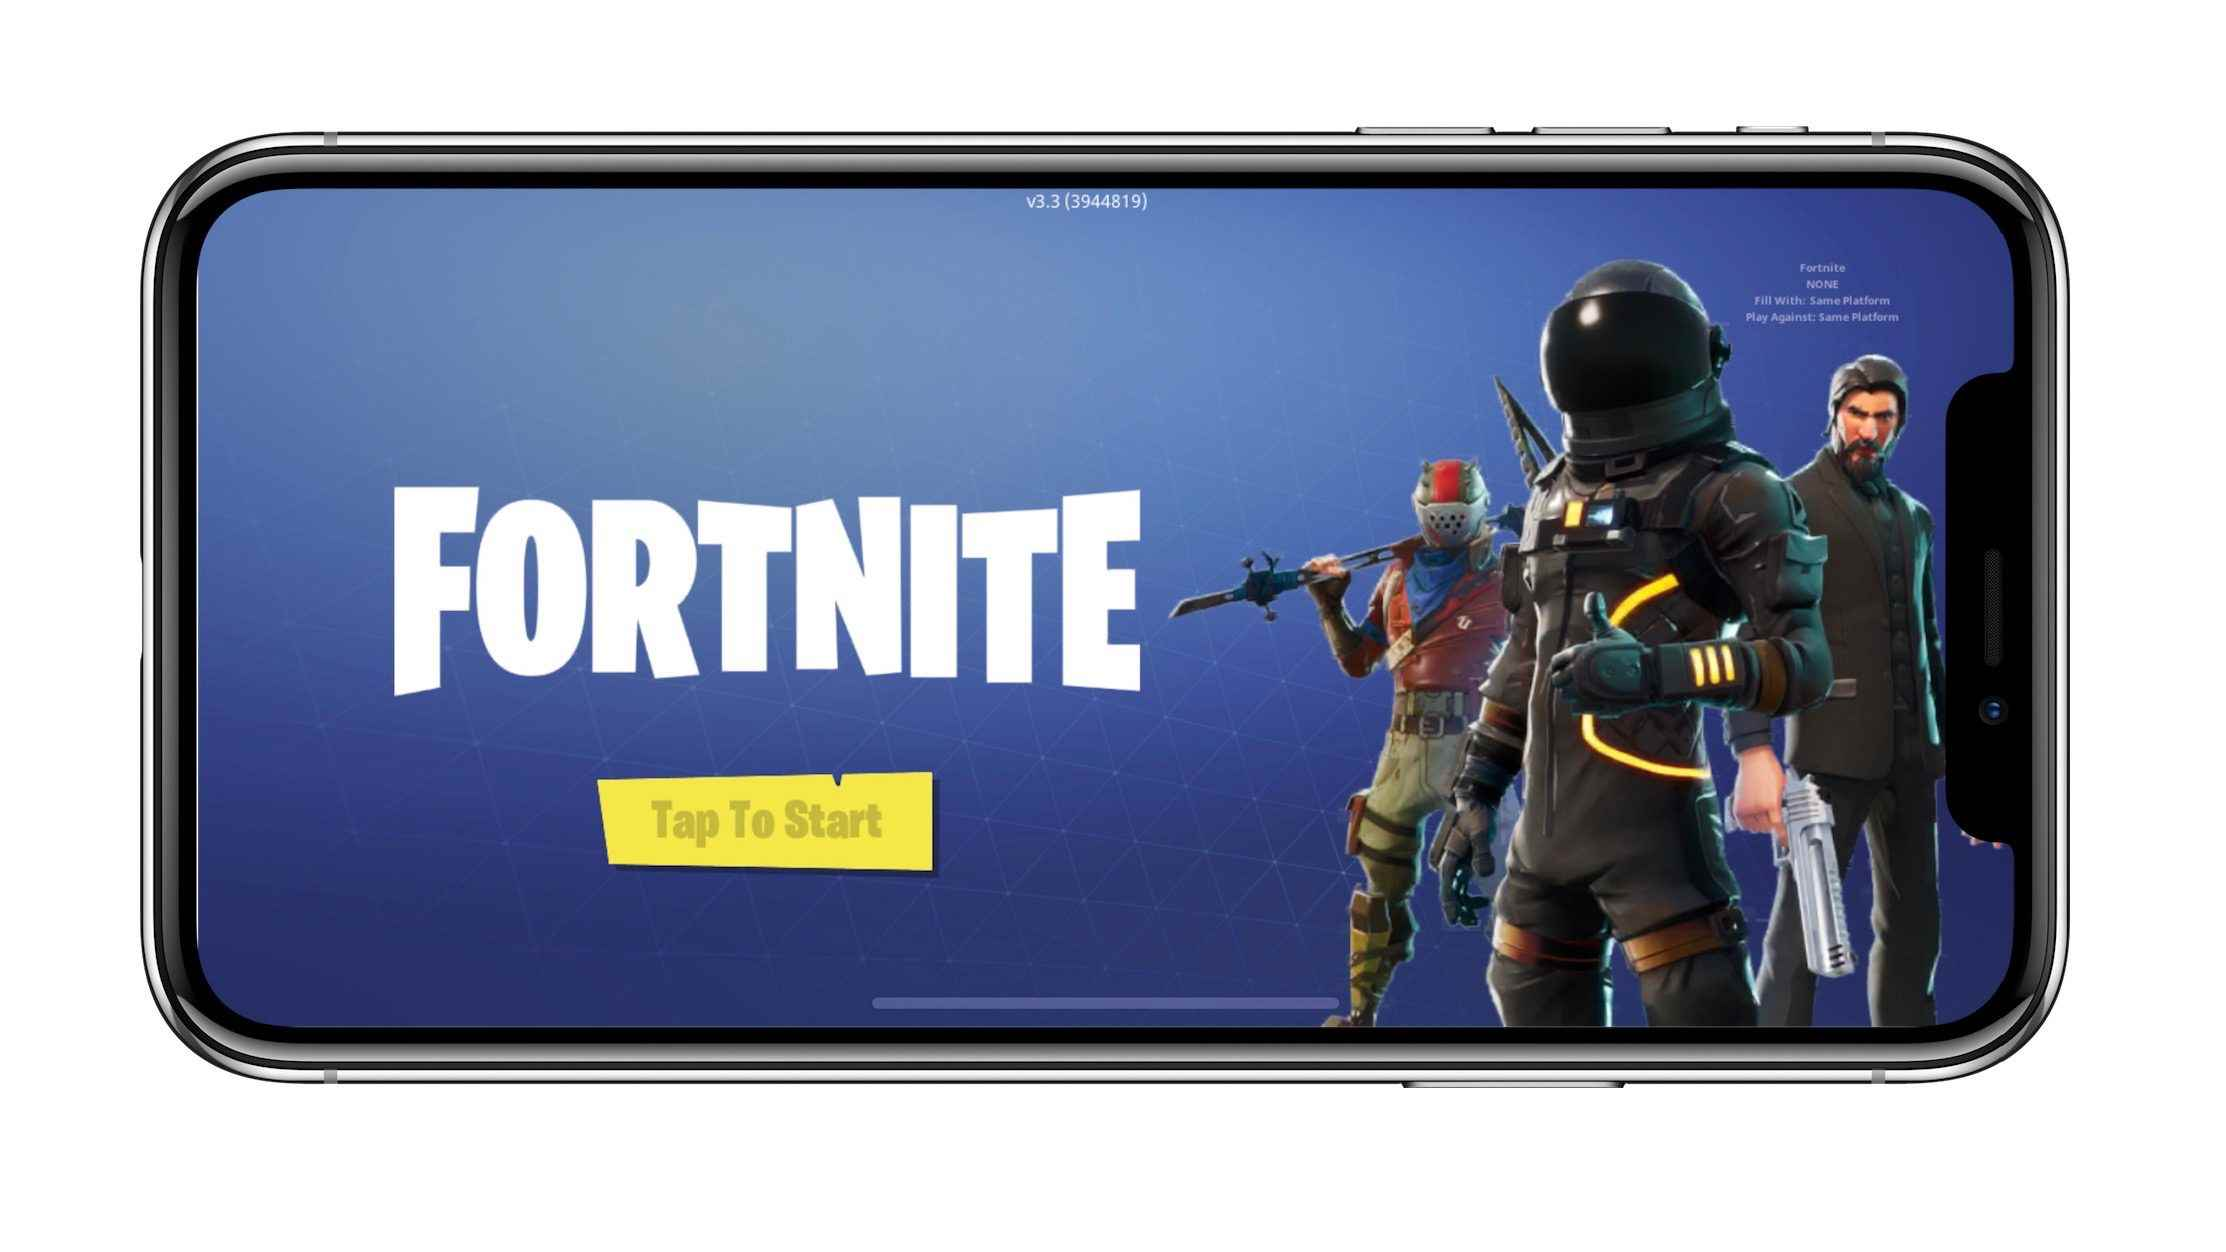 Iphone X Fornite Wallpapers Fortnite For Ios Generated Over 1m Of In App Purchases